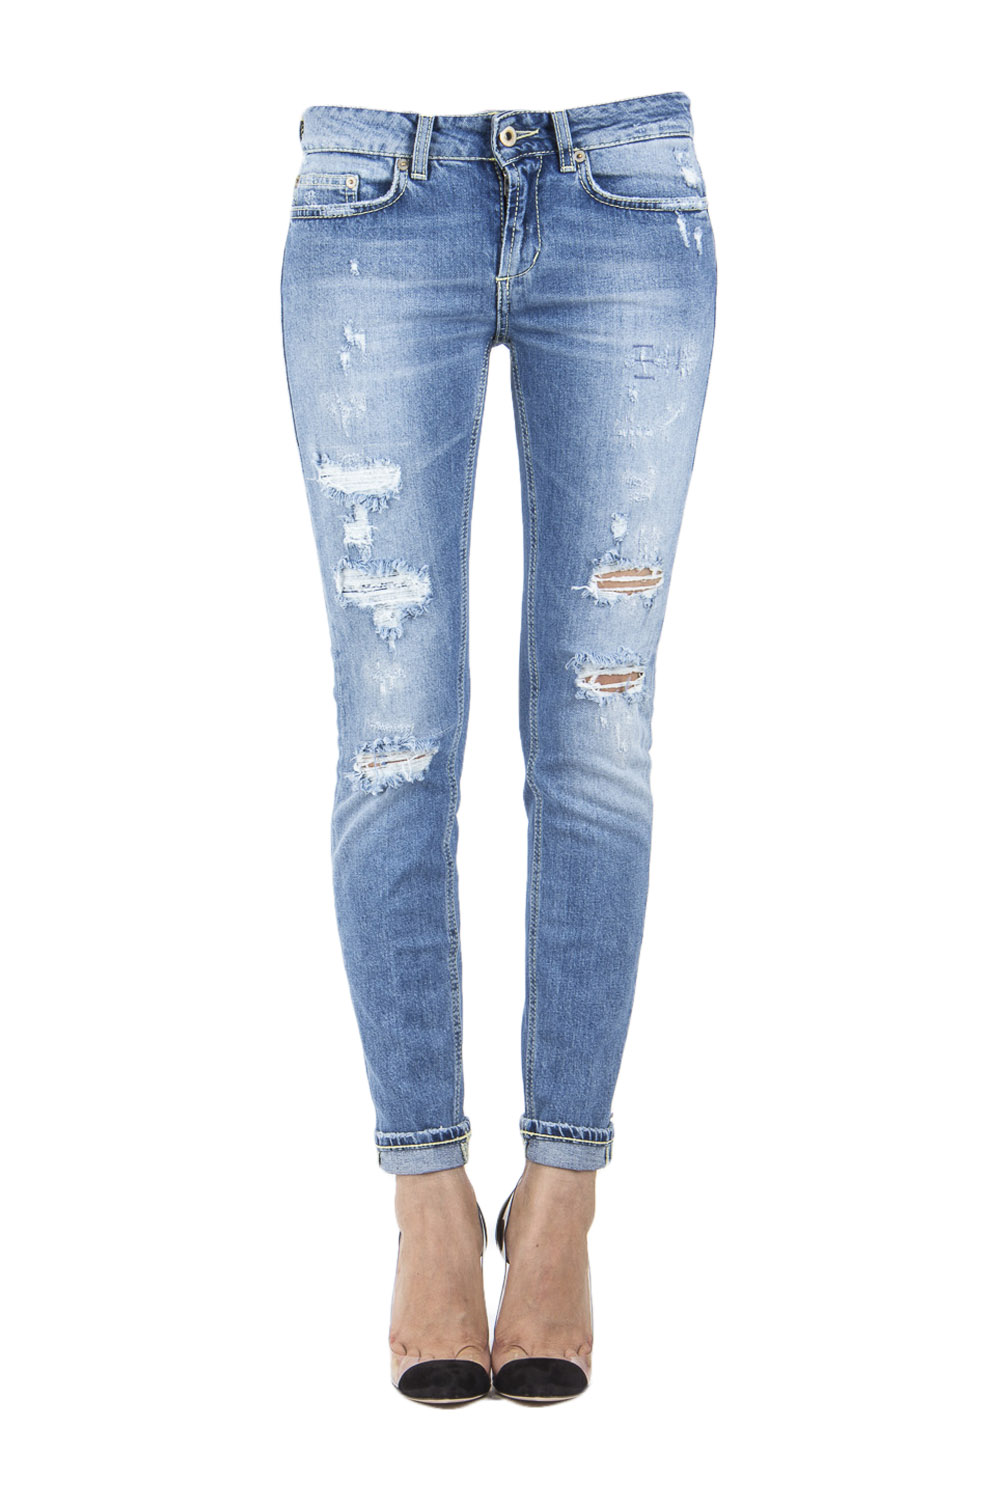 DENIM - Denim trousers Dondup